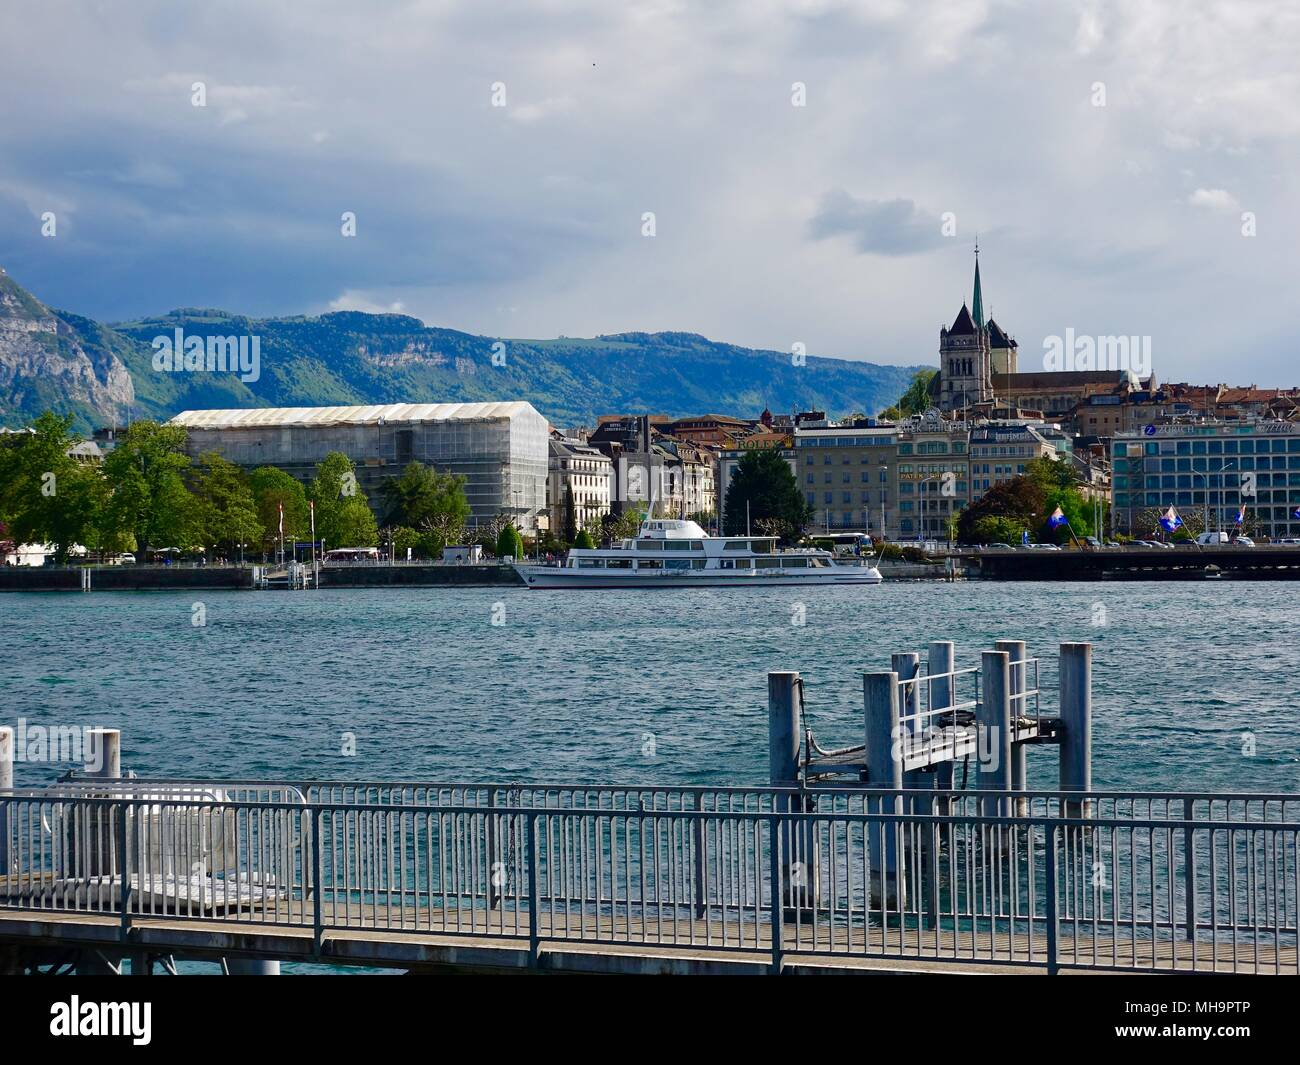 Looking across Lake Geneva, Lac Léman, towards St. Peter's Cathedral, Saint Pierre Cathedral, and cloud-topped mountains Geneva, Switzerland. - Stock Image